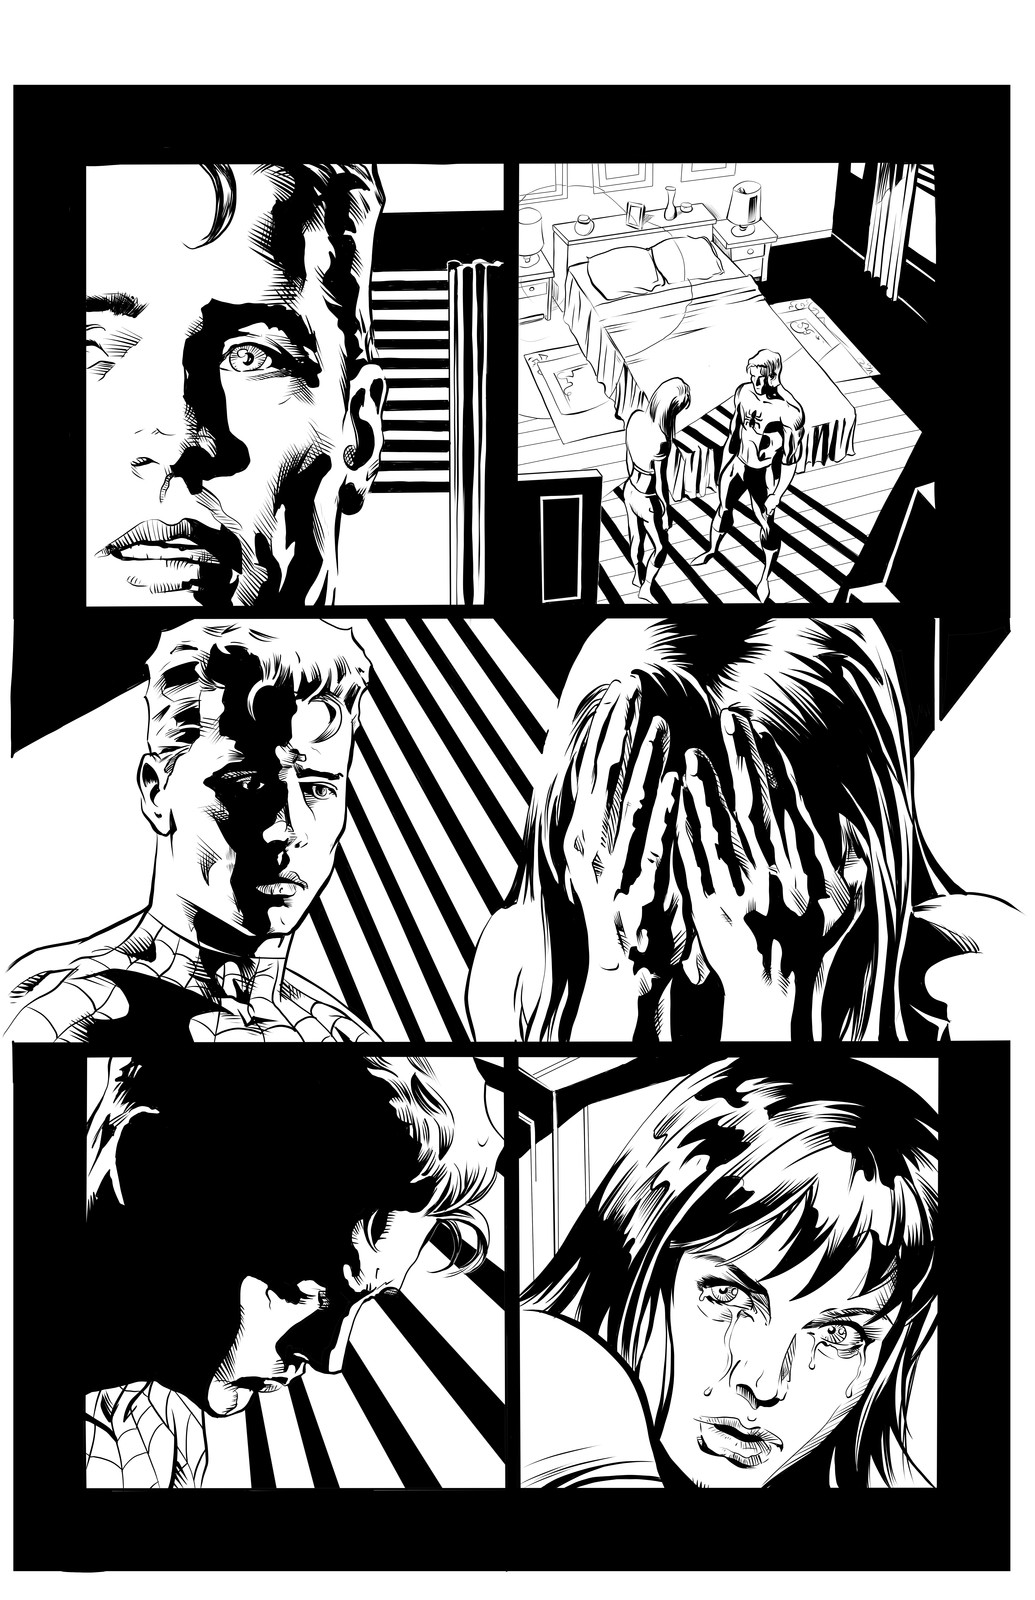 Deodato - Amazing Spiderman 02